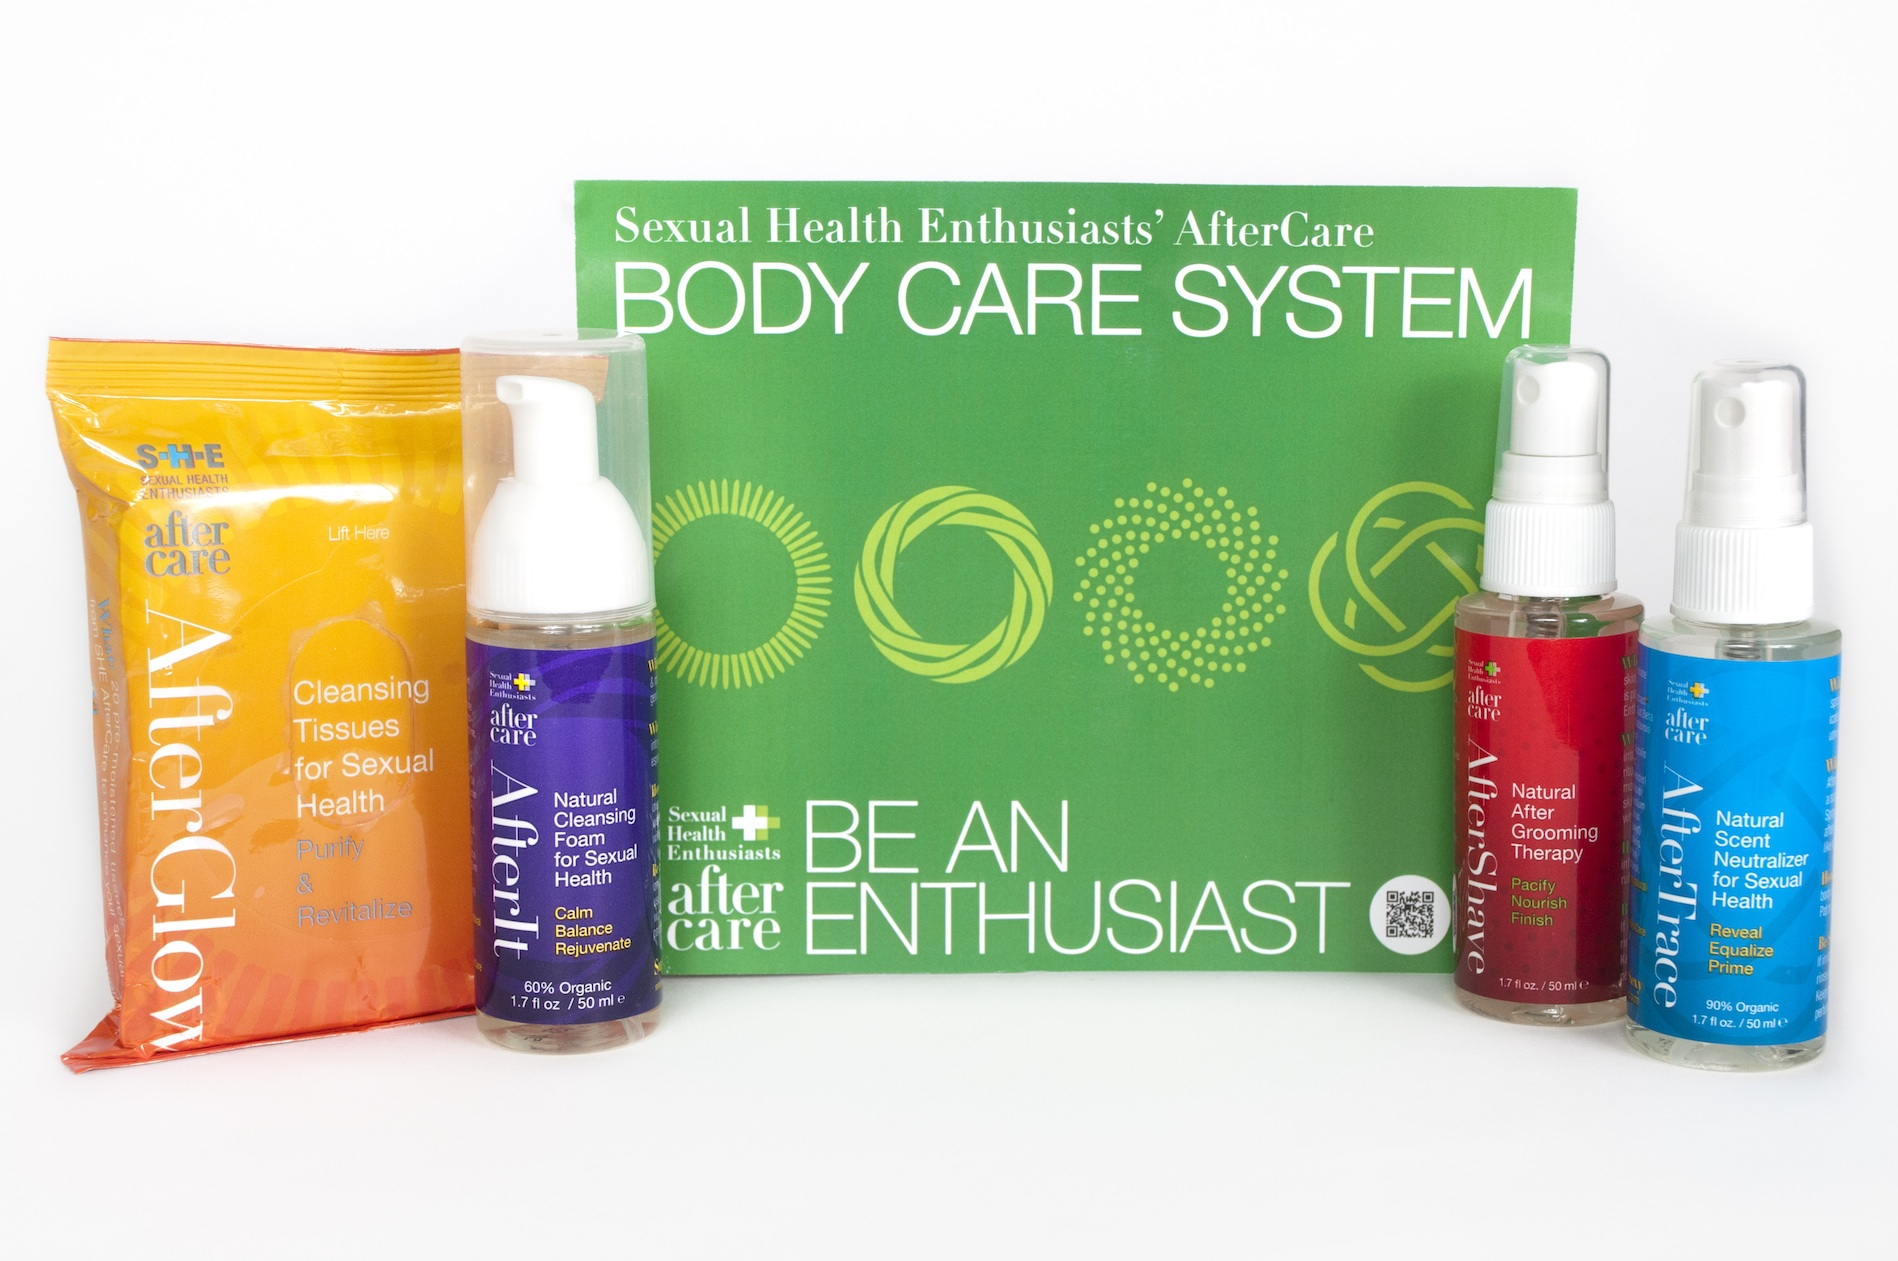 Sexual Health Enthusiasts AfterCare Body Care Travel Set